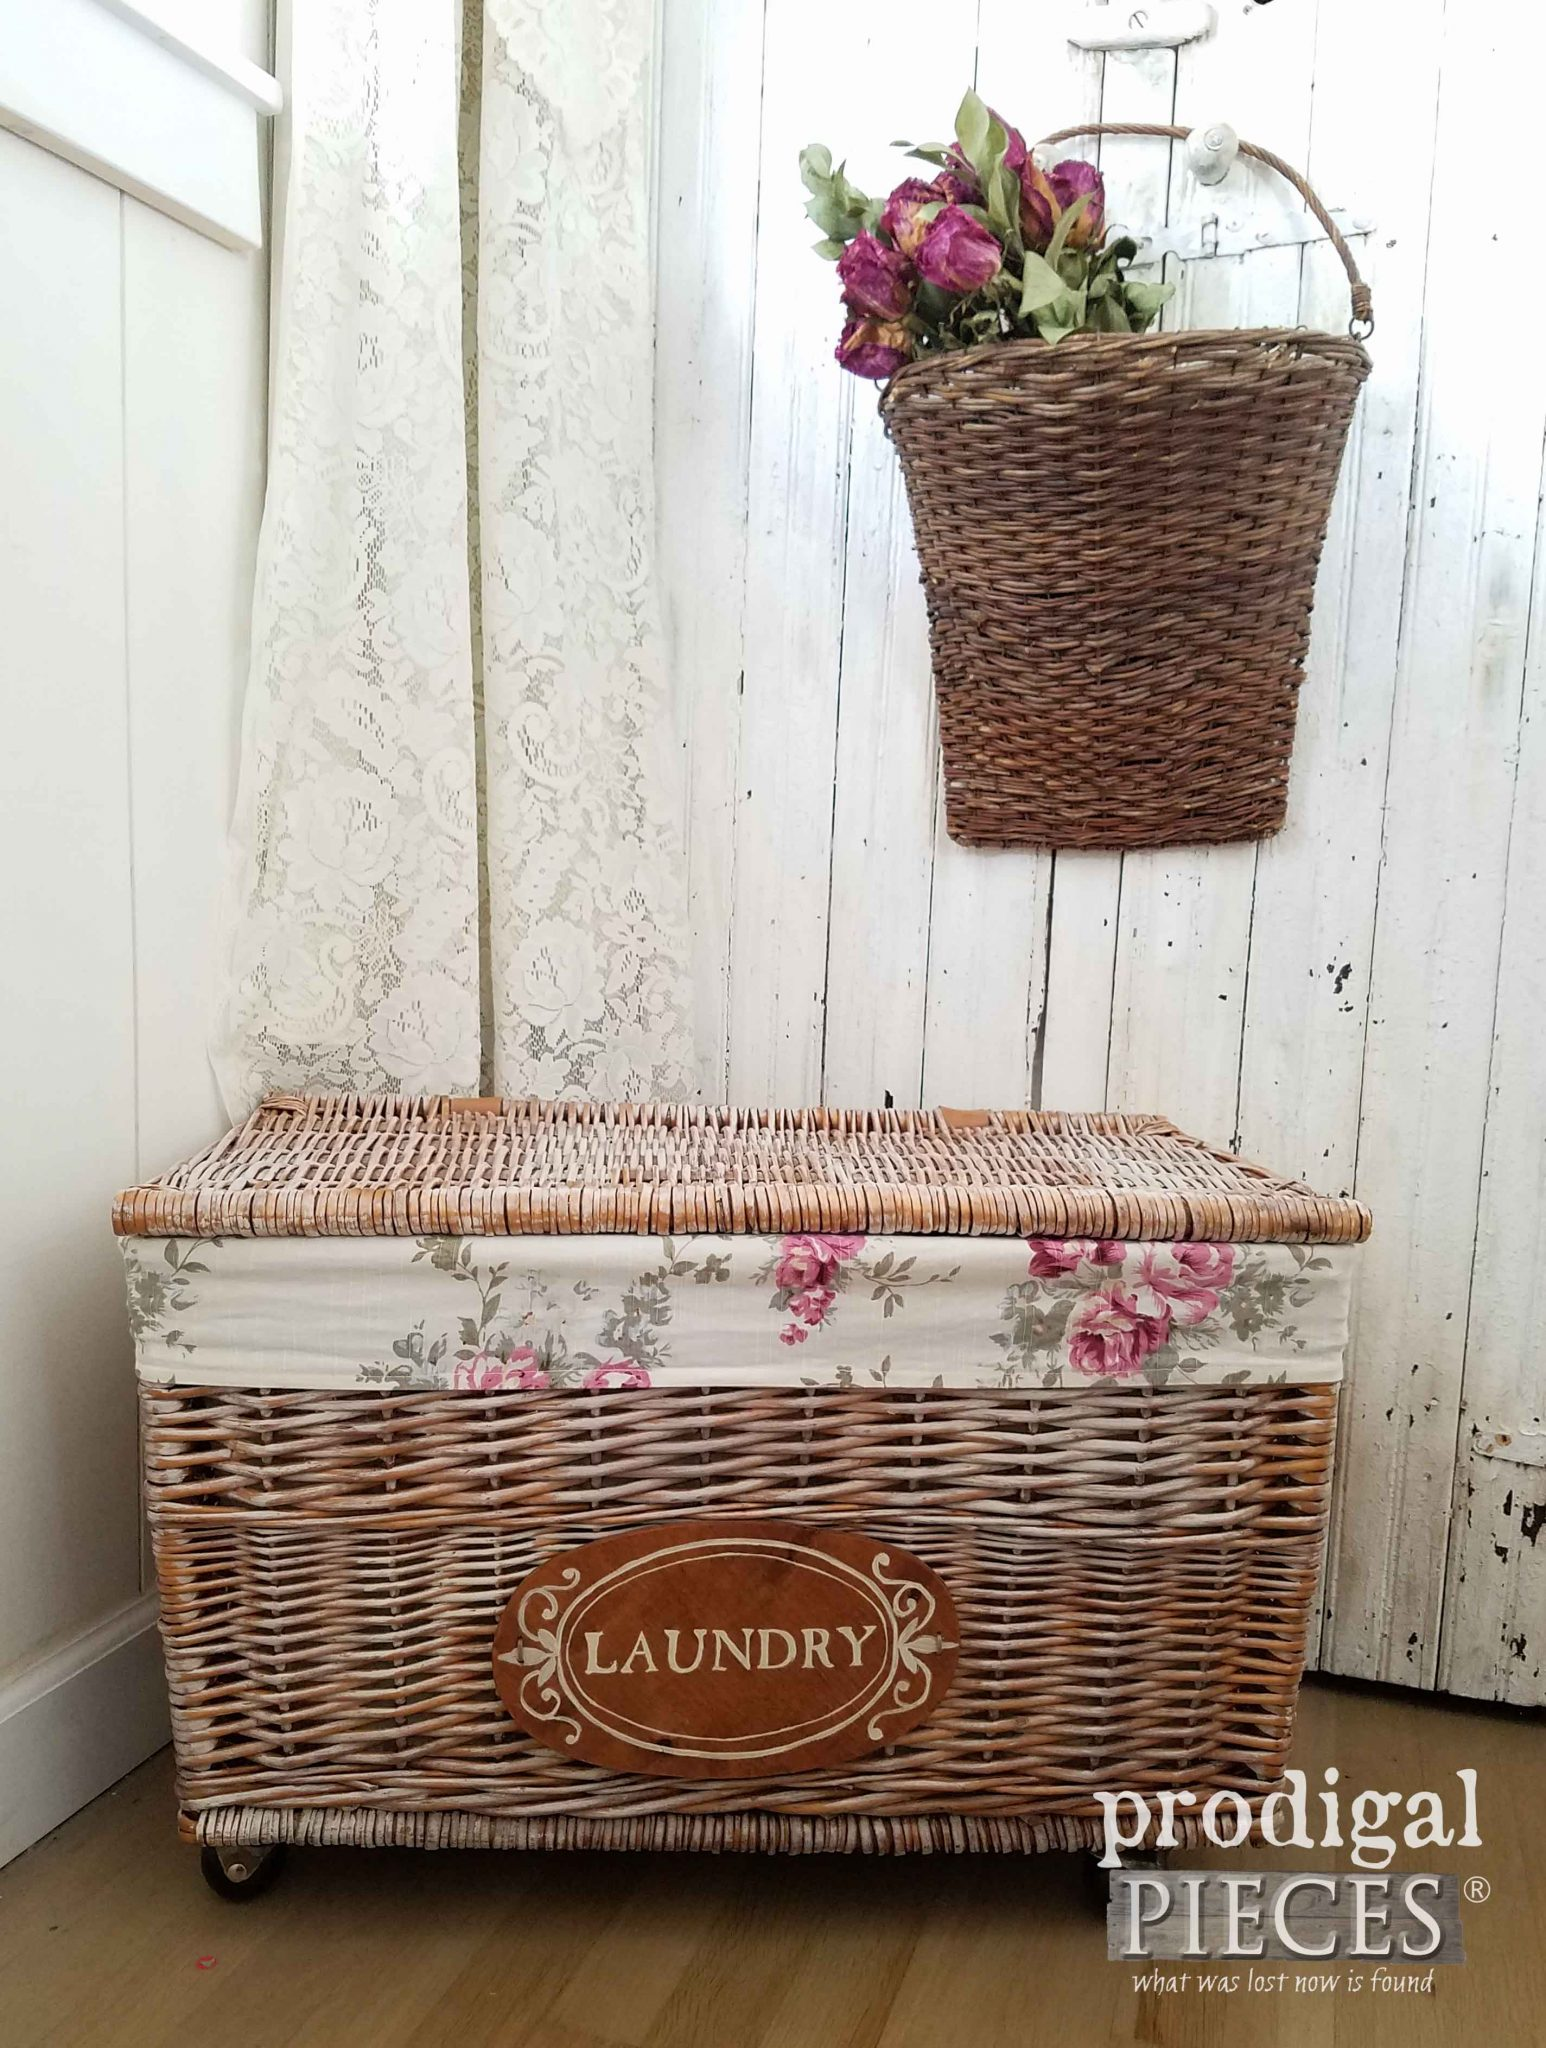 Farmhouse Laundry Cart complete with DIY steps by Prodigal Pieces | prodigalpieces.com